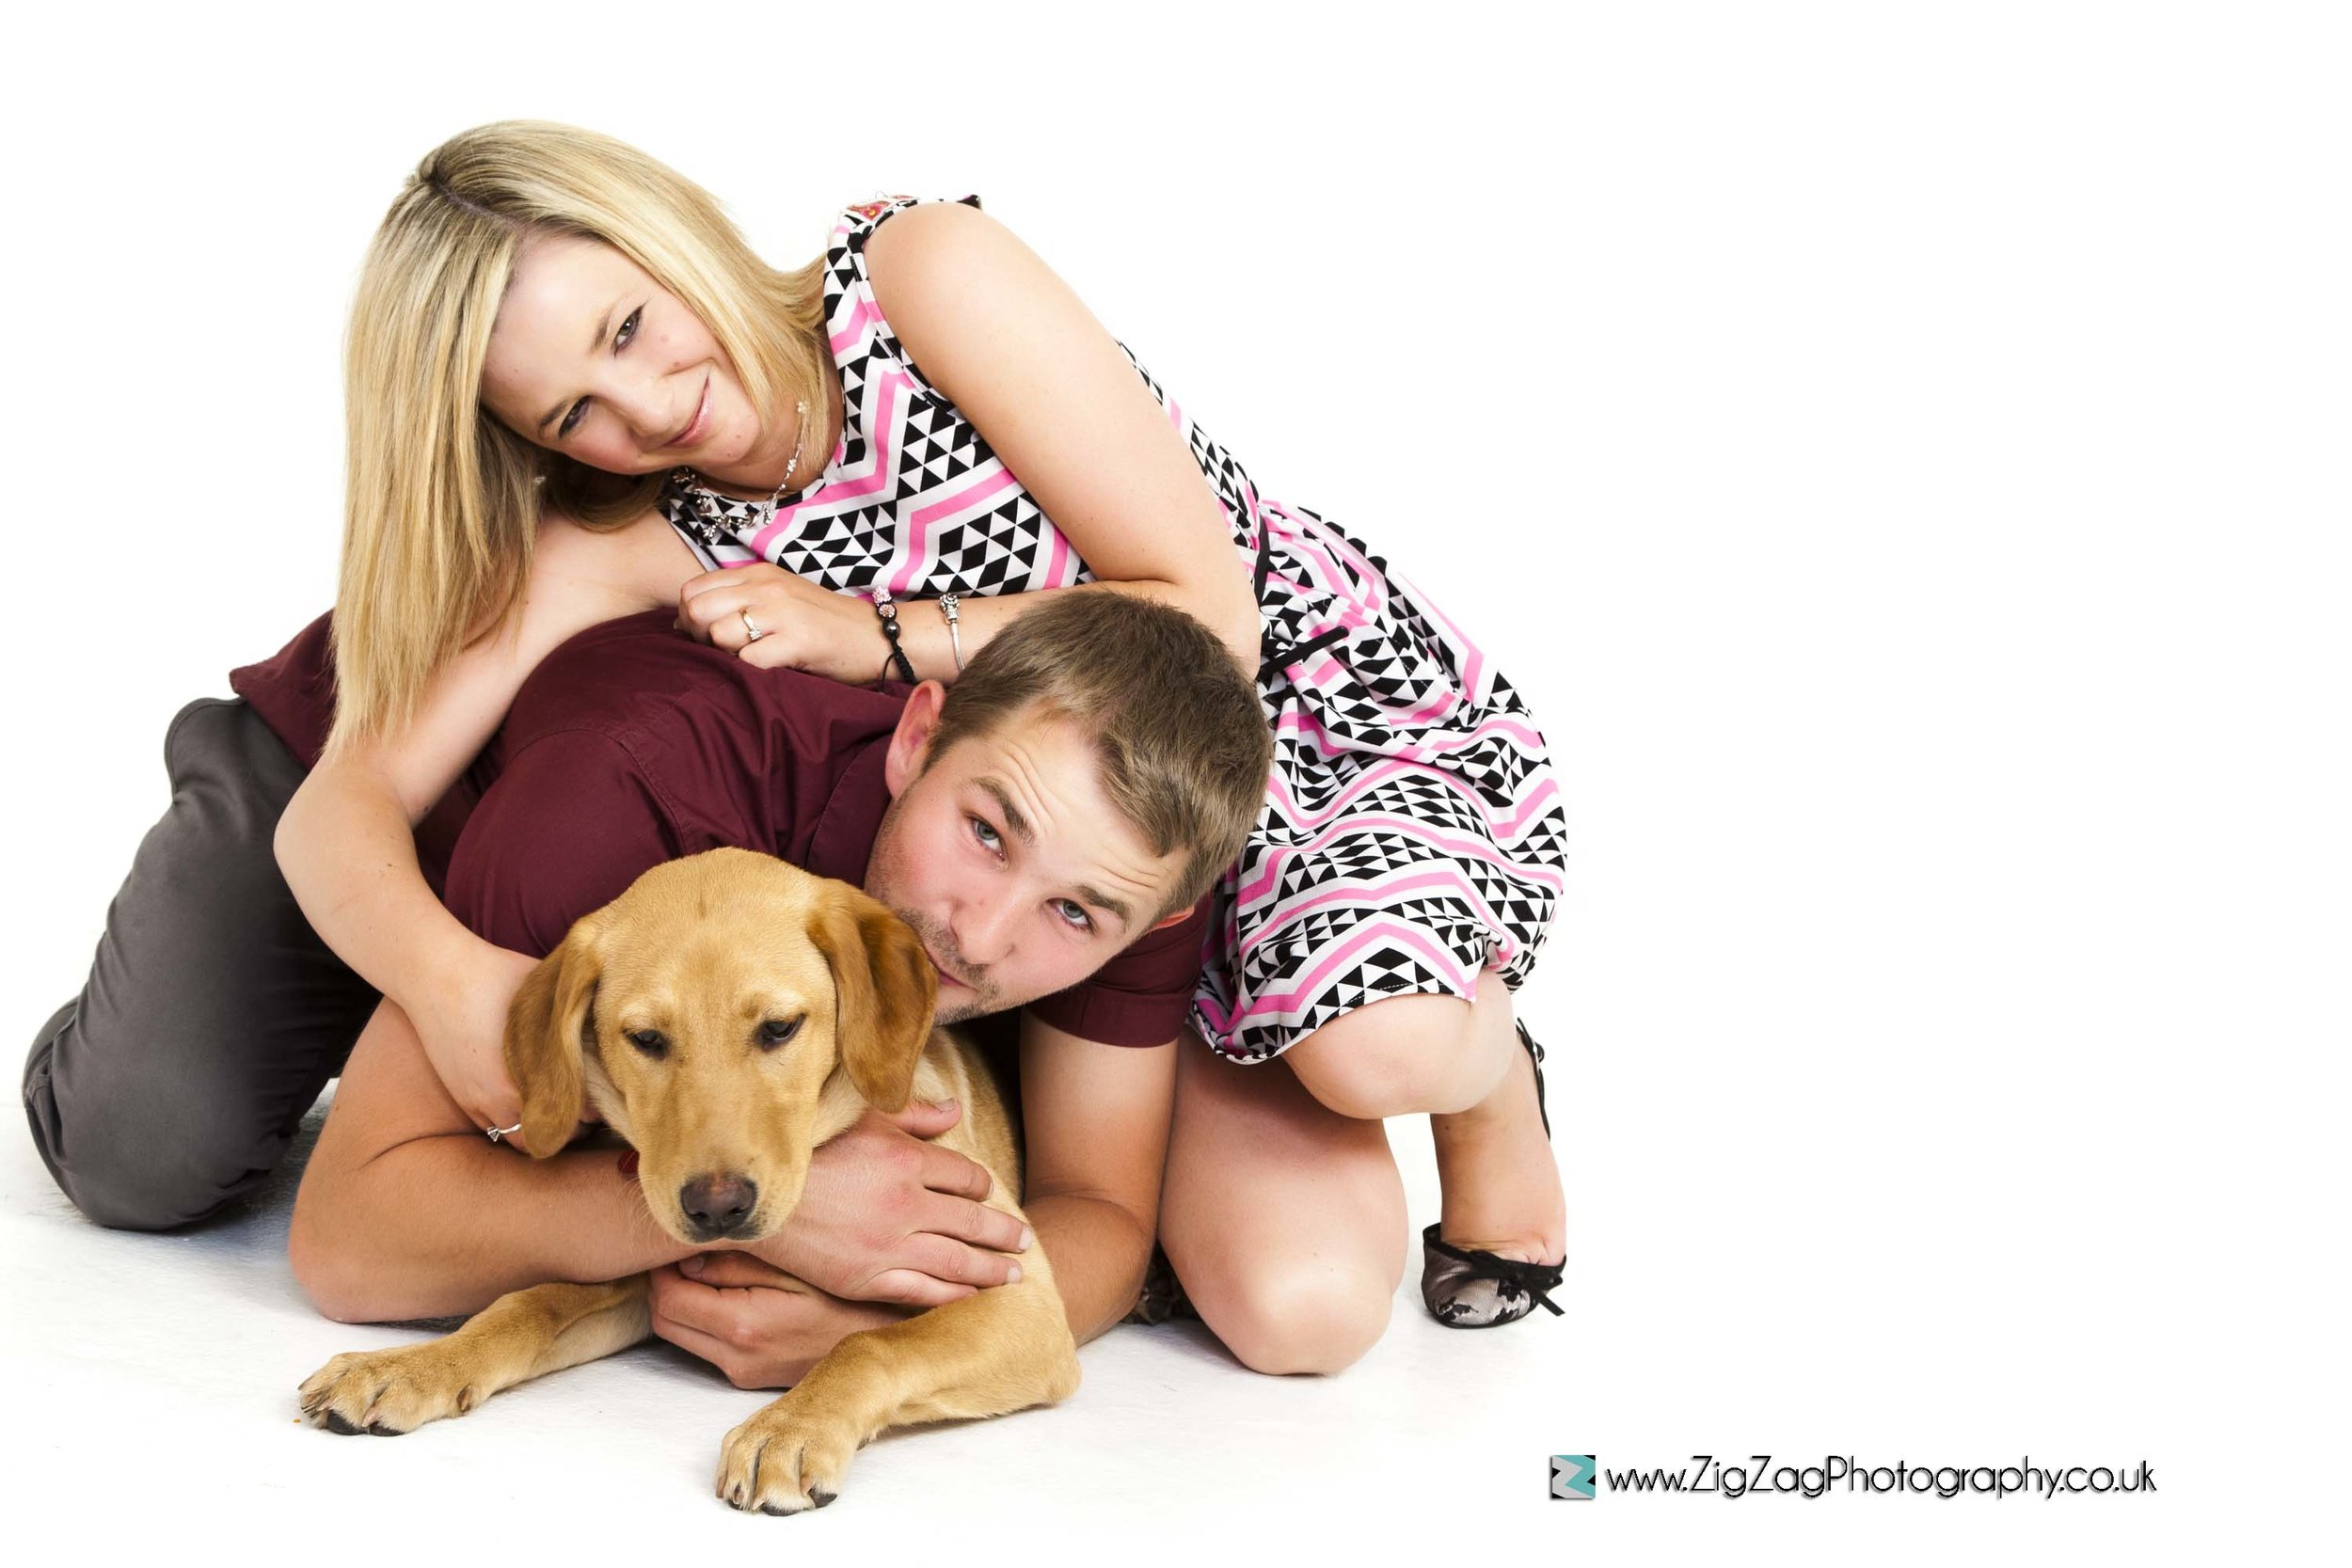 photography-session-leicester-studio-photoshoot-zigzag-pets-dog-couple-fun-family-ideas.jpg